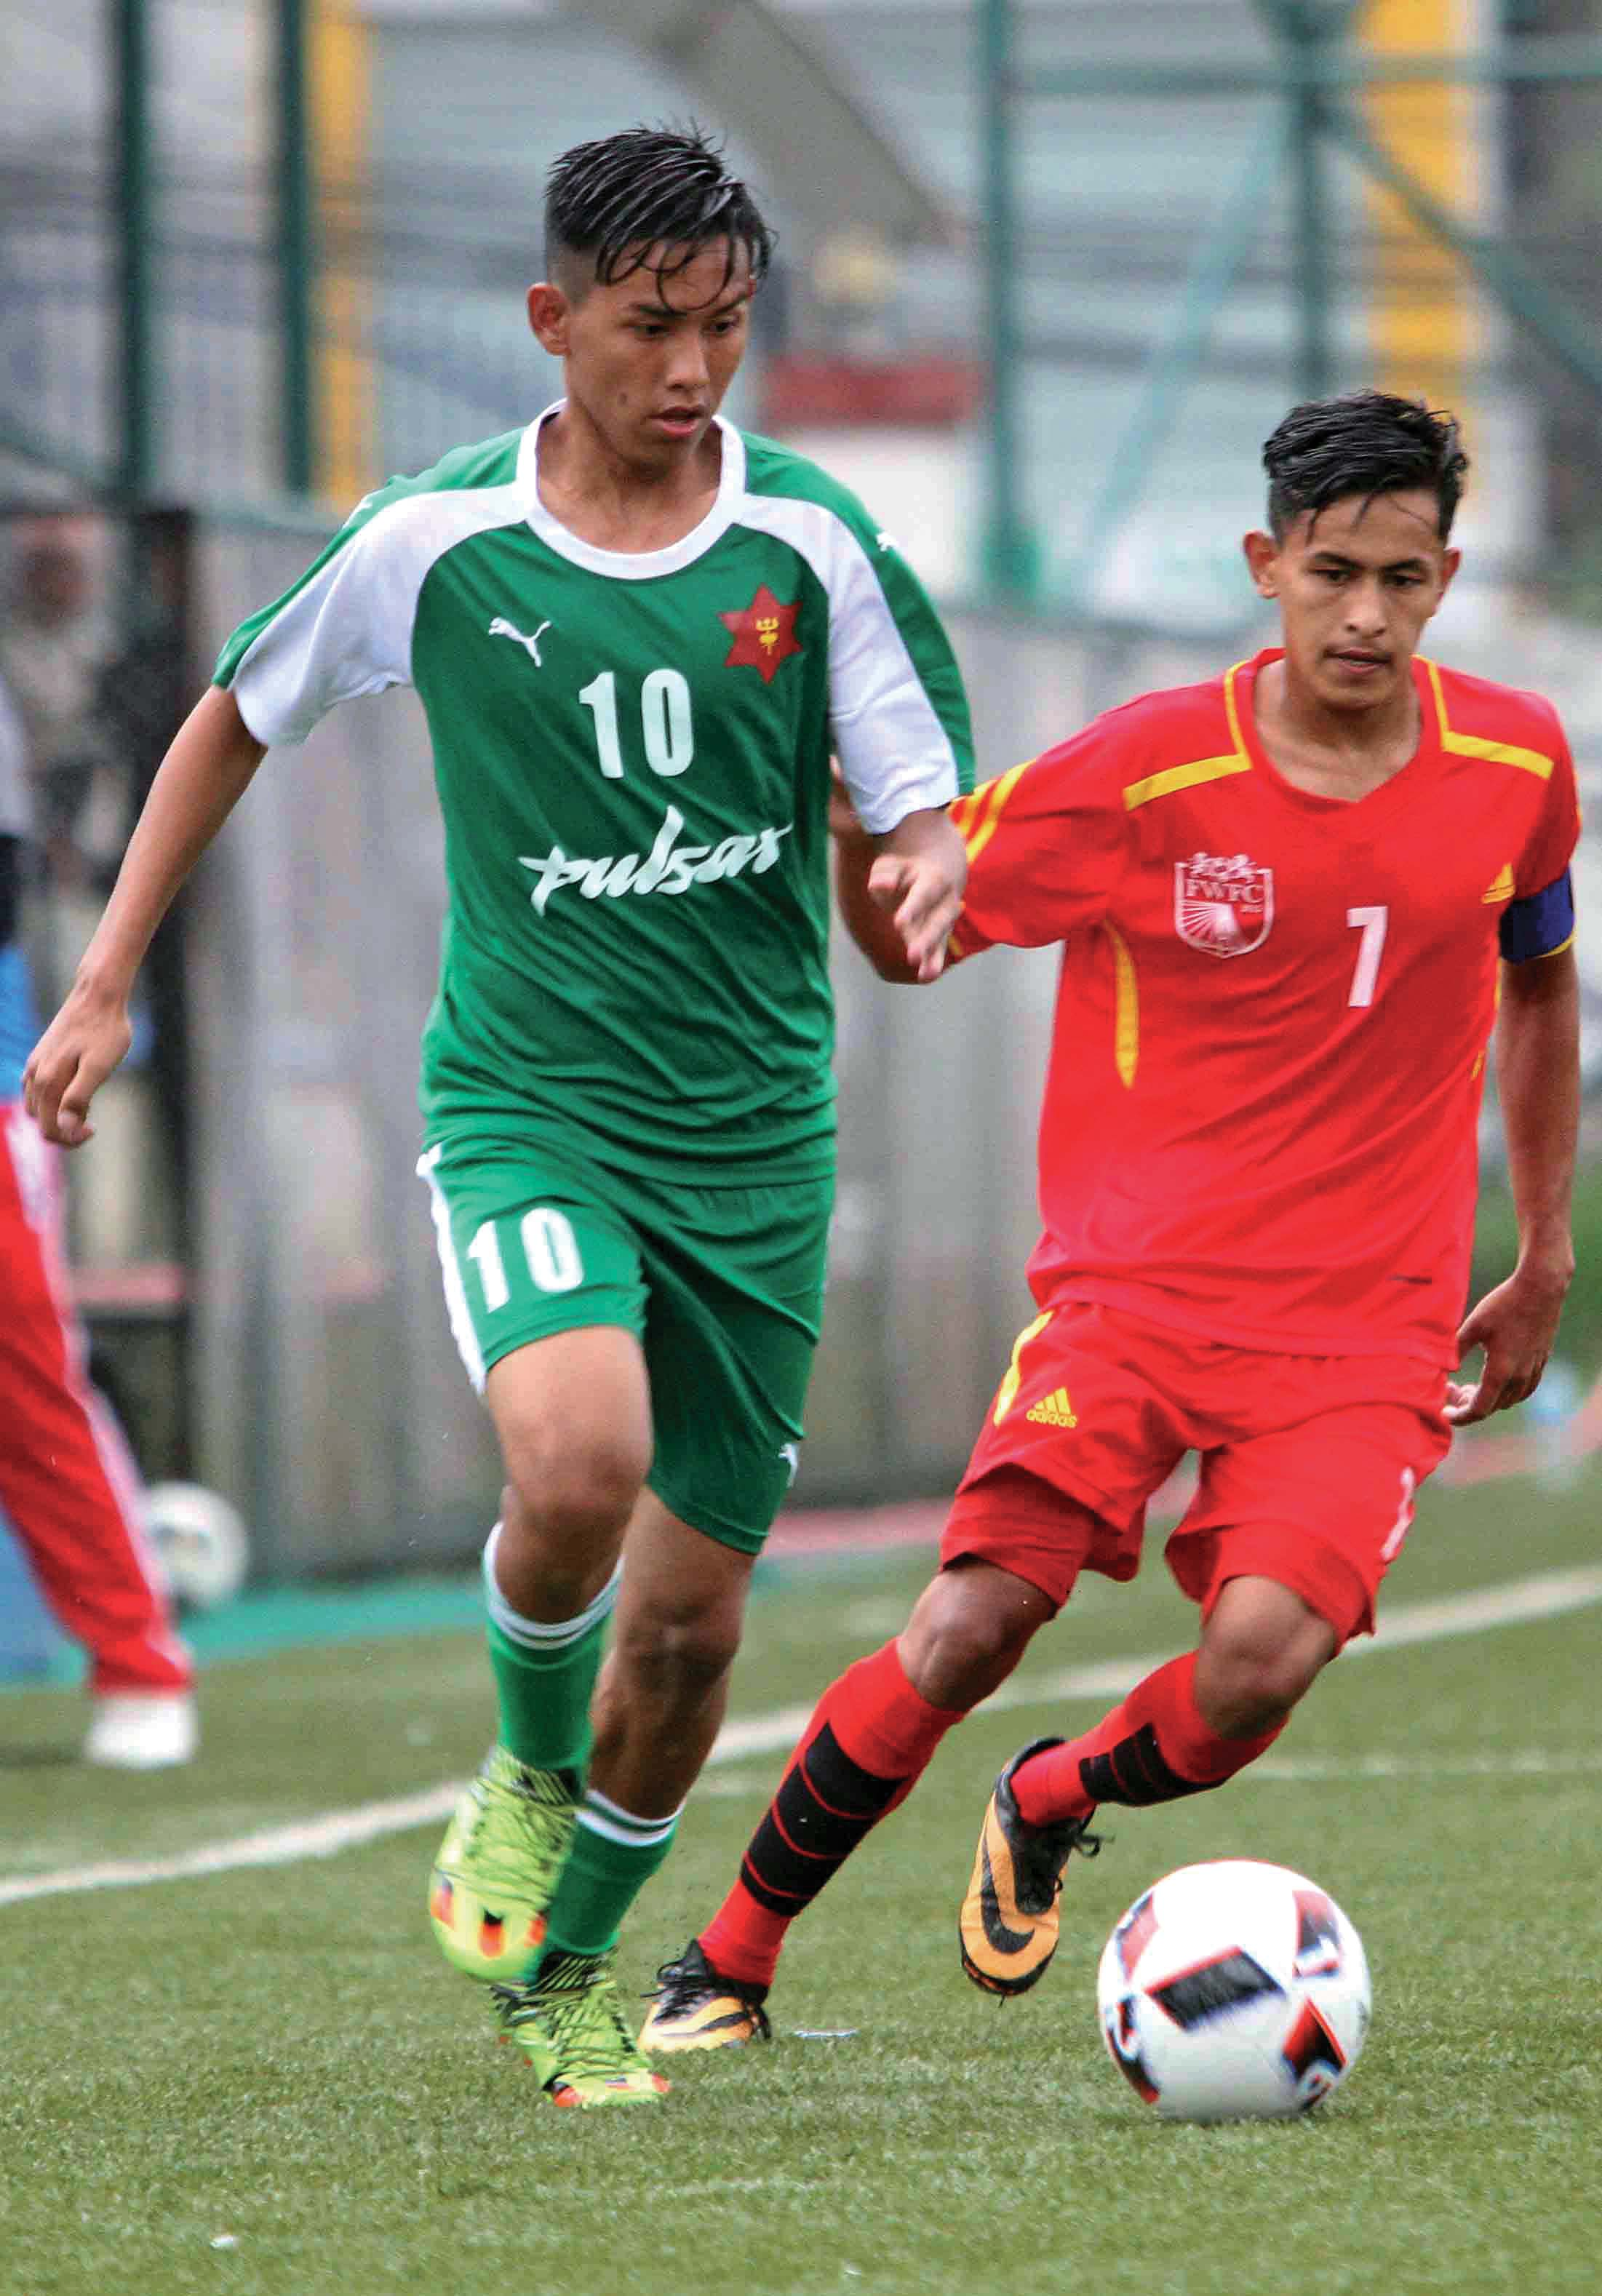 TAC's Prezen Tamang (left) and Far-western skipper Kamal Deuba vie for the ball during their Lalit Memorial U-18 Football Tournament match in Lalitpur on Saturday. Photo: THT